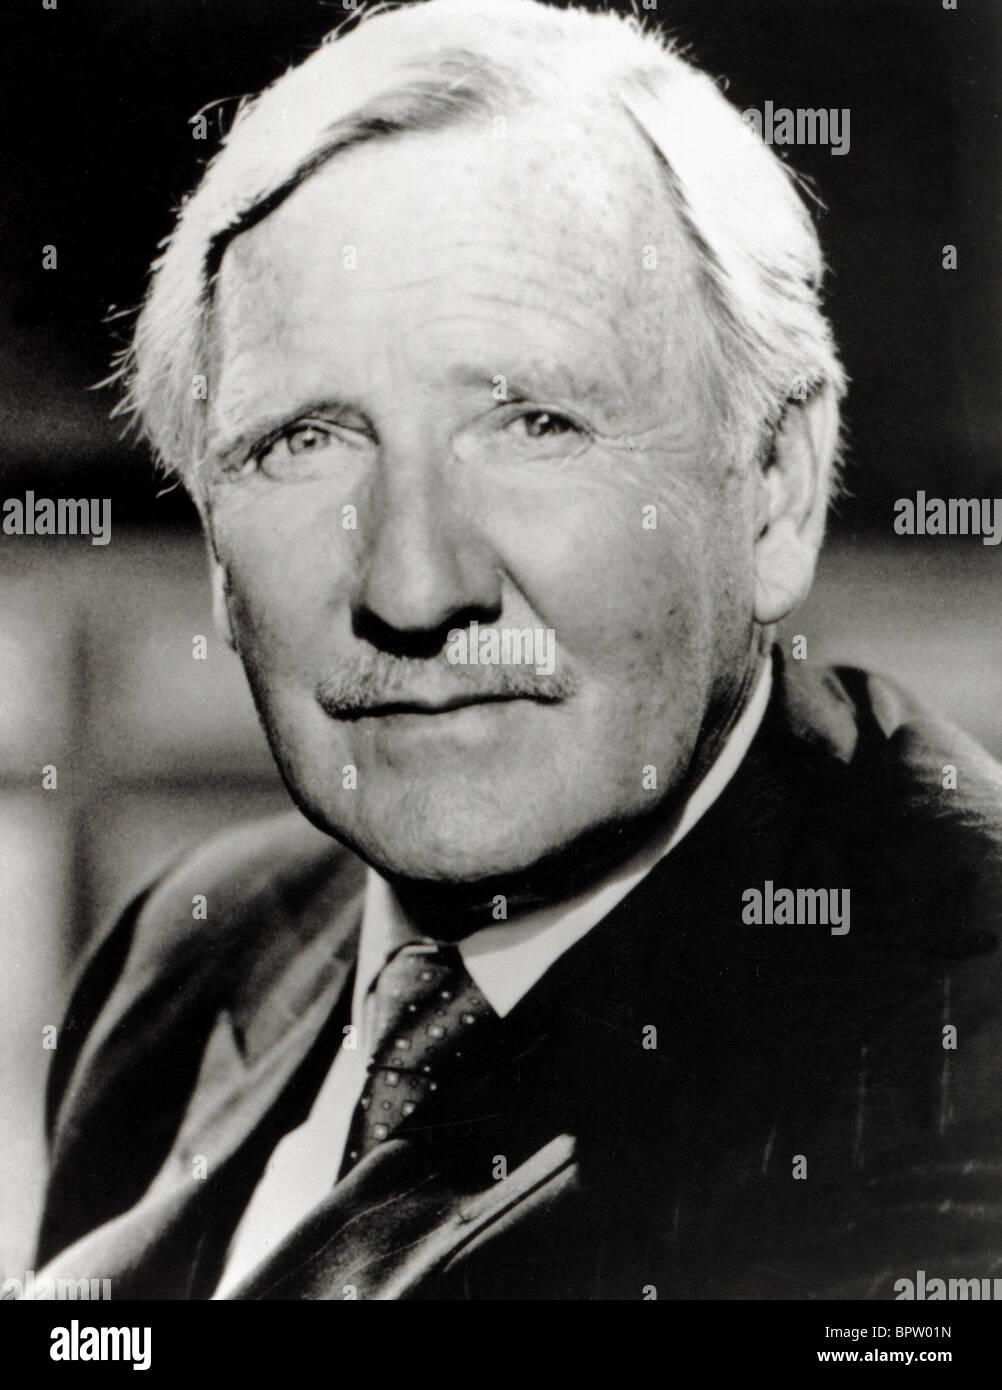 LESLIE PHILLIPS ACTOR (1973) - Stock Image